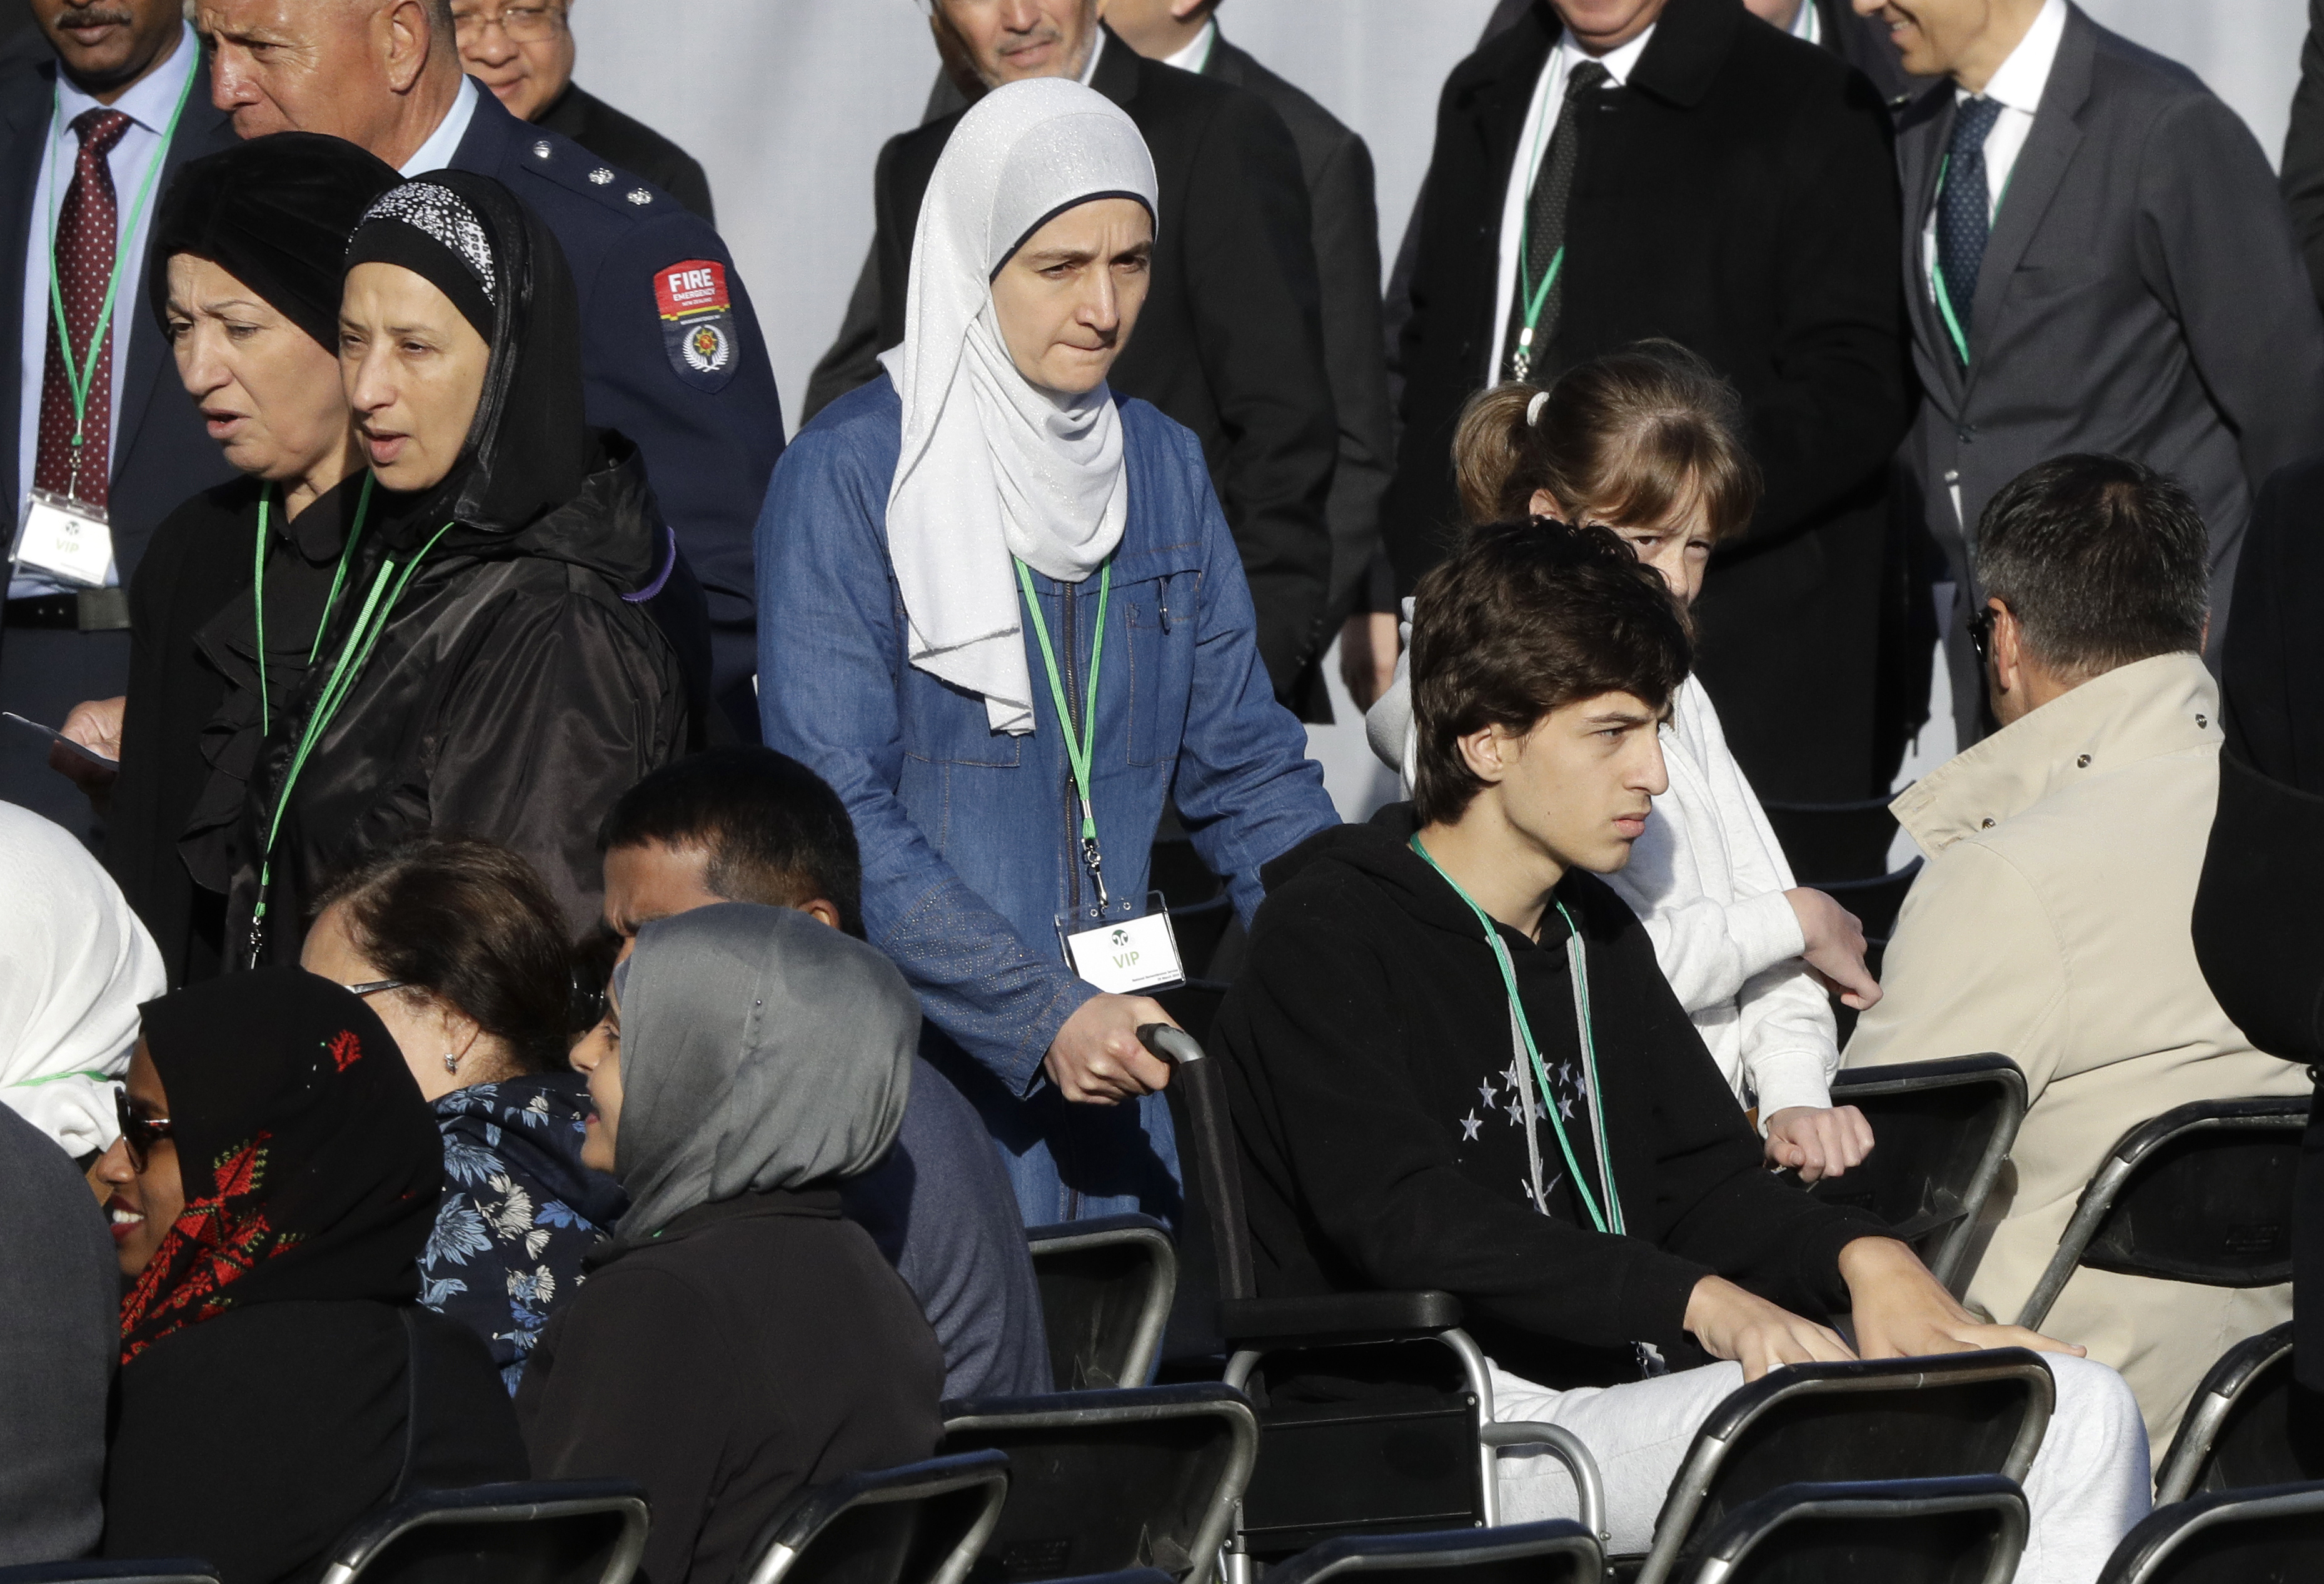 Mosque shooting survivor Zaid Mustafa, in wheelchair arrives with his mother to the National Remembrance Service in Hagley Park for the victims of the March 15 mosques terrorist attack in Christchurch, New Zealand, Friday, March 29, 2019. (AP Photo/Mark Baker)